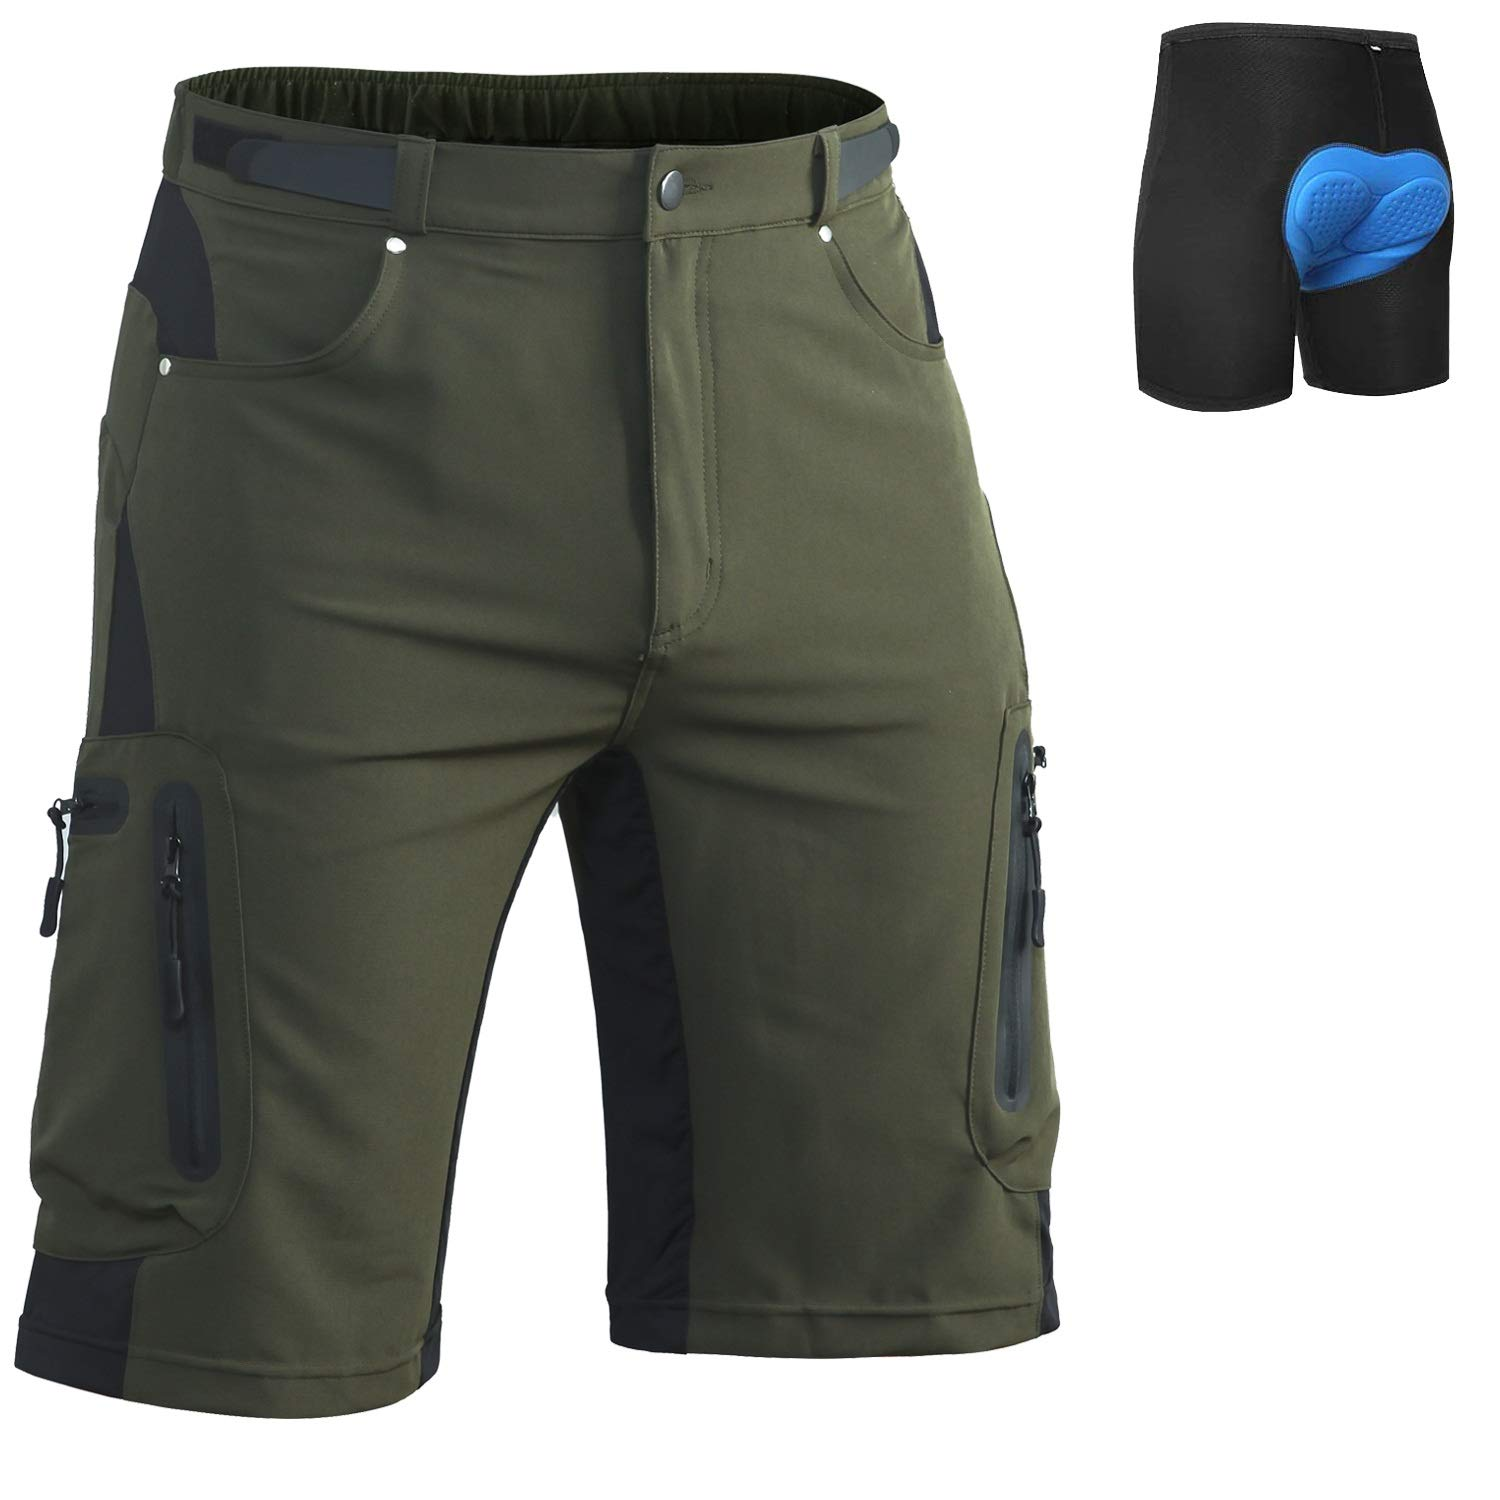 10c26fe03 Amazon.com  Ally Men s Cycling Shorts Loose-Fit 4D Padded Bike Bicycle MTB  Mountain Bike Shorts